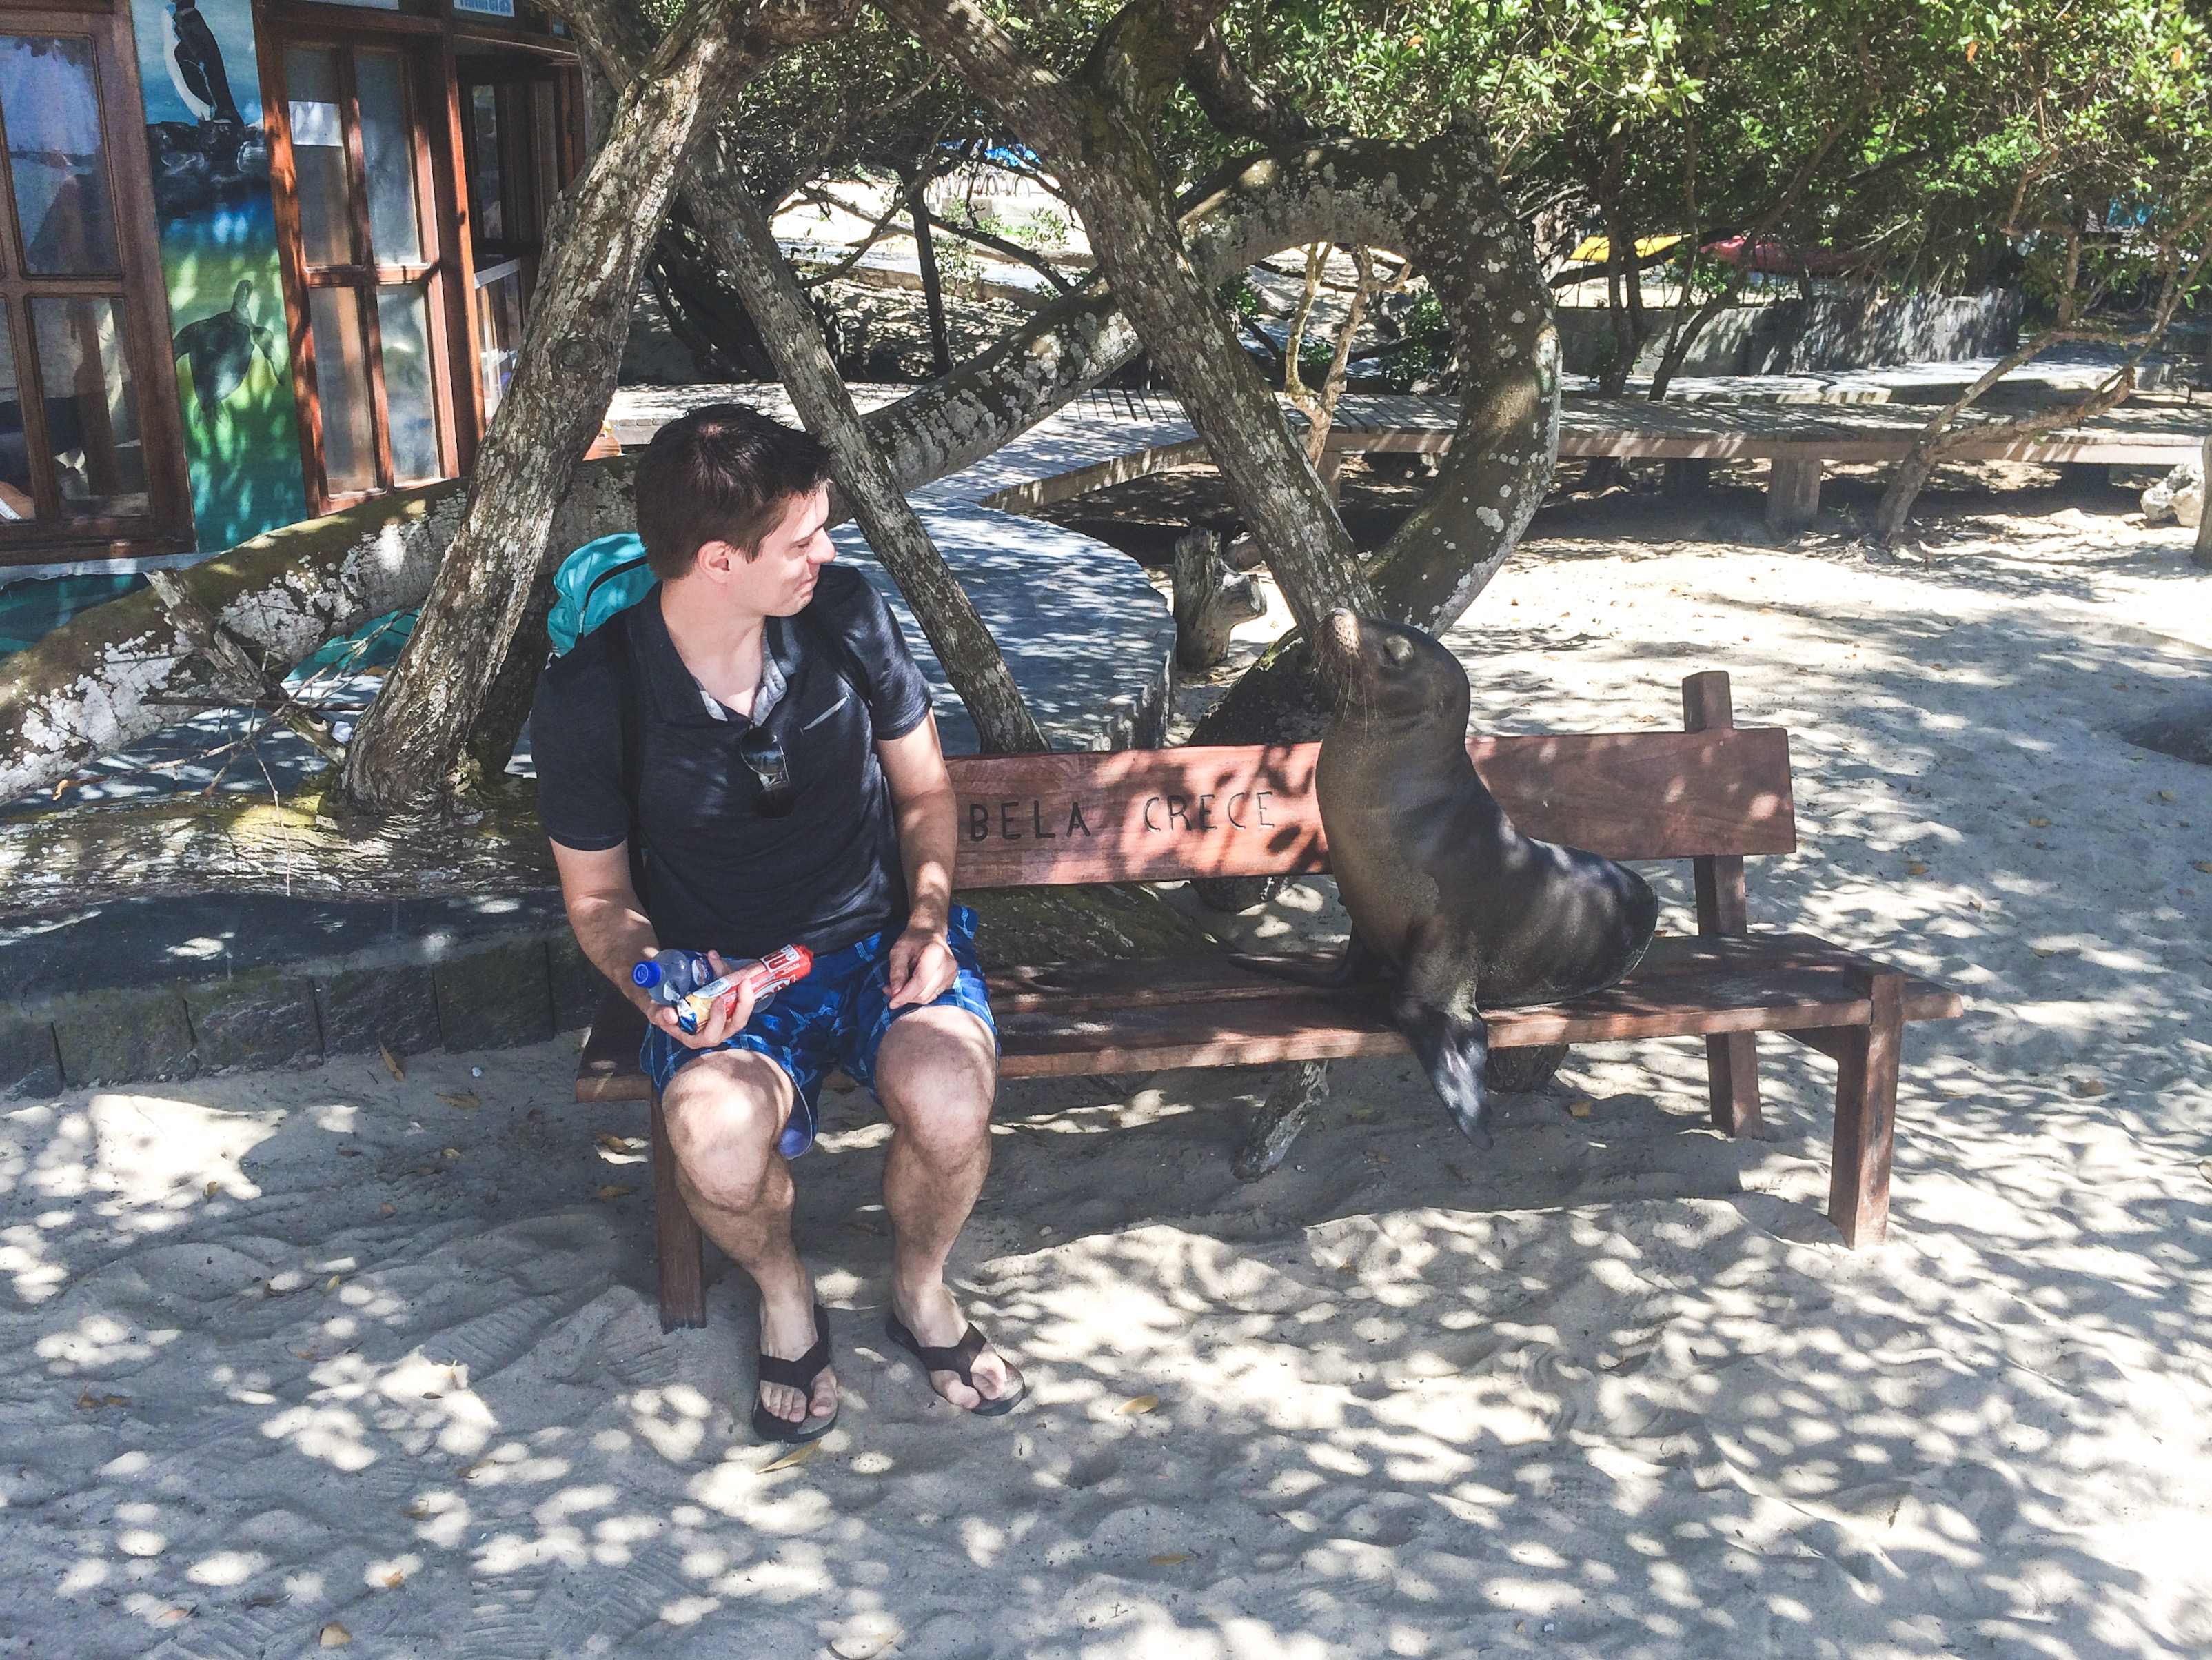 John and Seal on a bench in the Galapagos